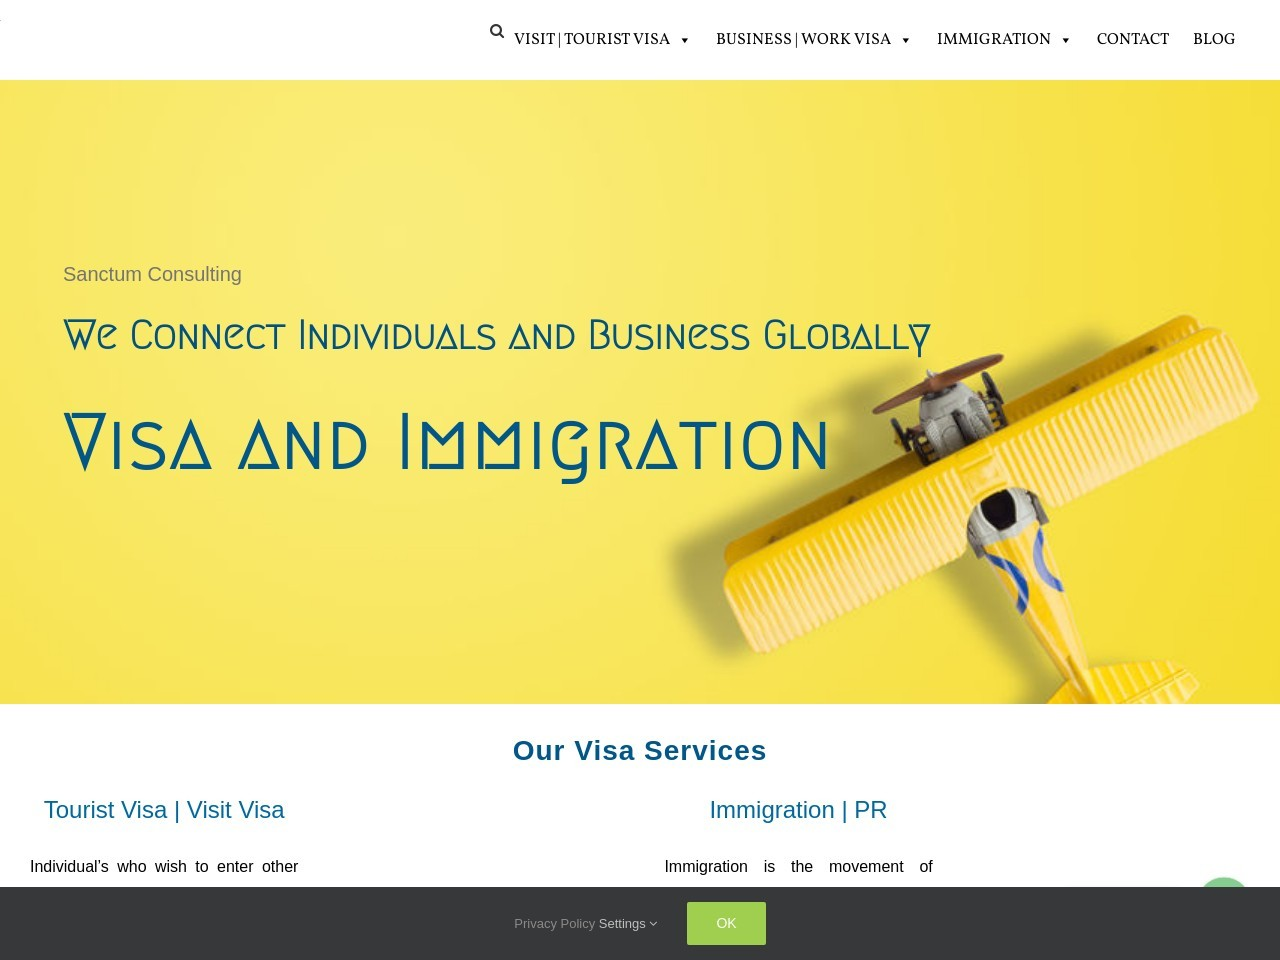 Avail Our Top Rate Italy Business Visa Services